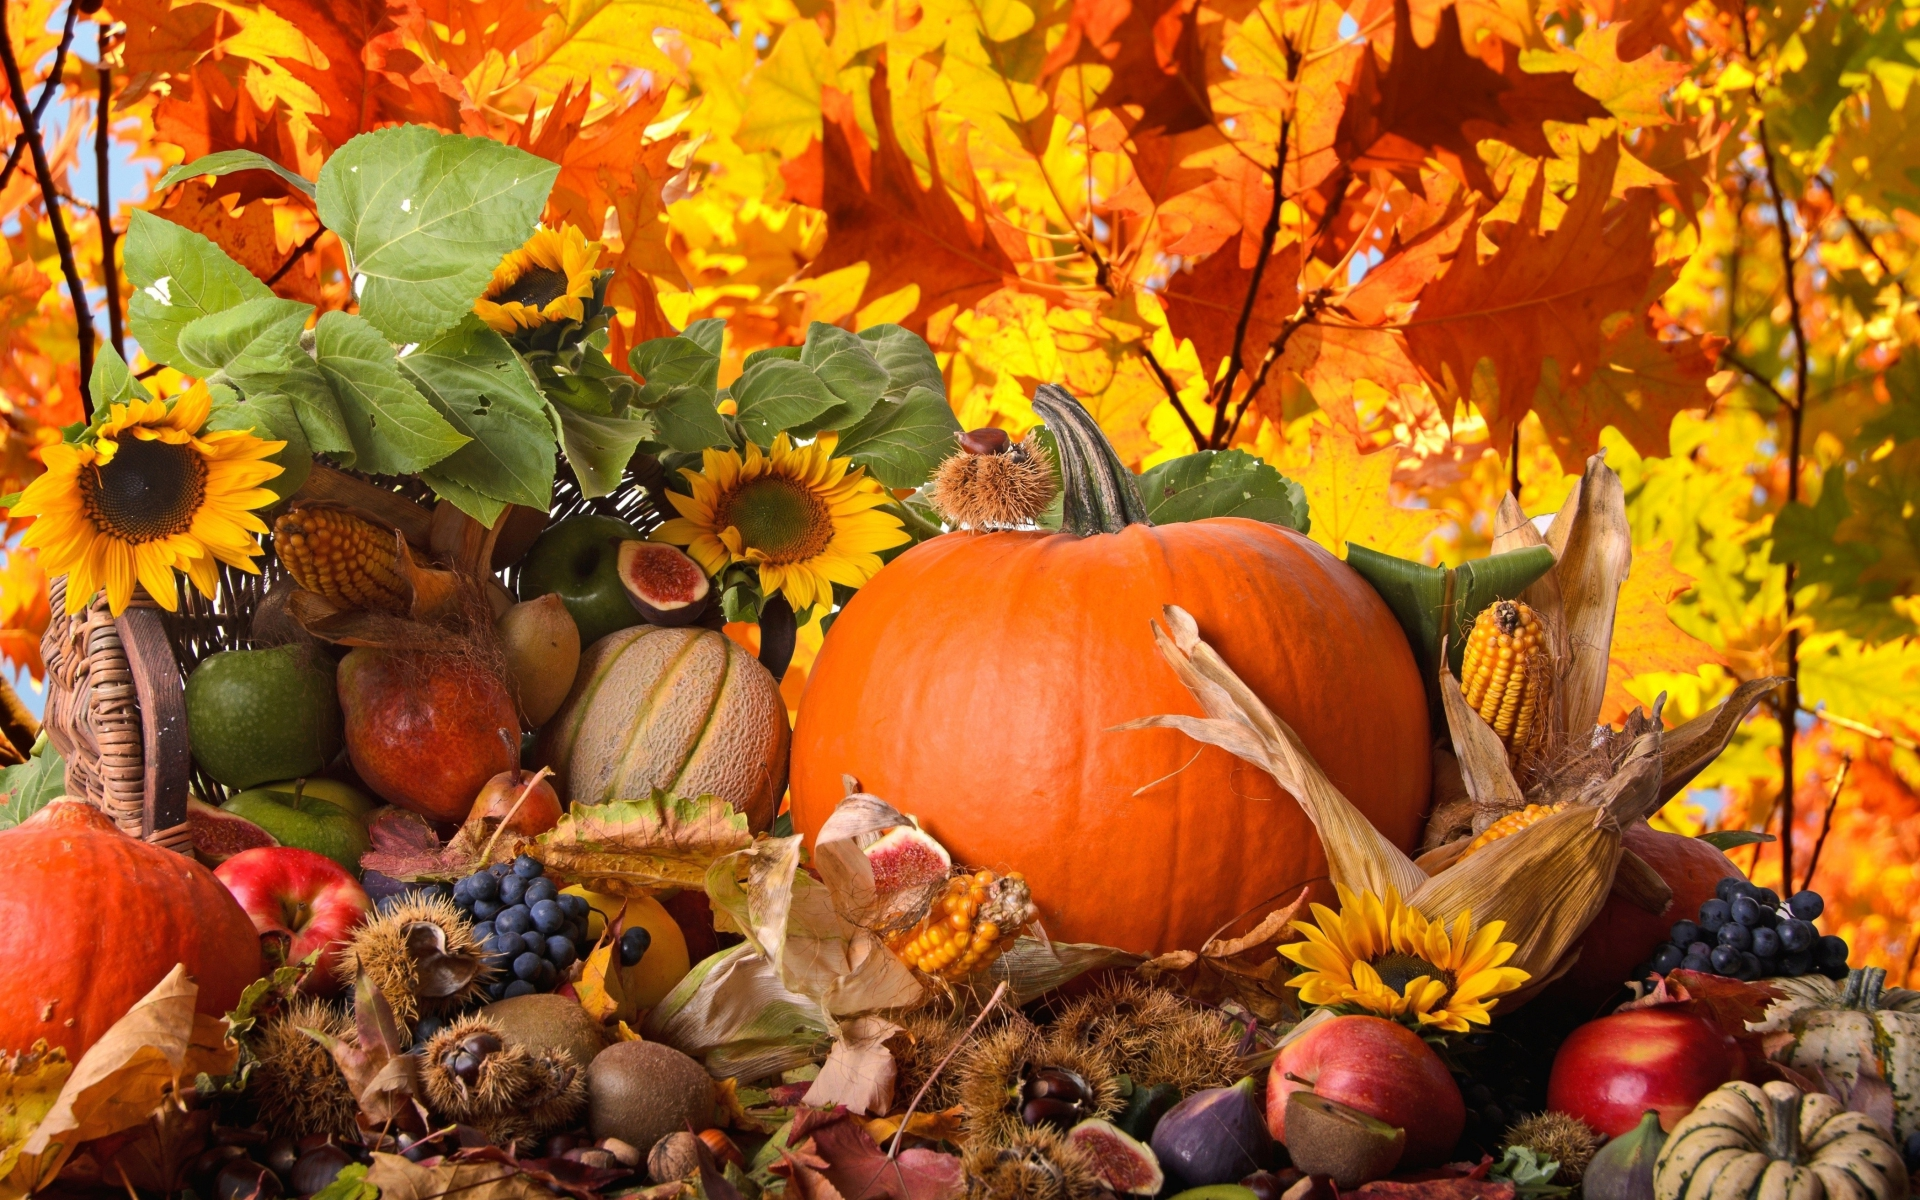 Holiday - Thanksgiving  - Fall - Season - Seasons - Nature - Autumn - Leaf - Leaves - Flowers Wallpaper